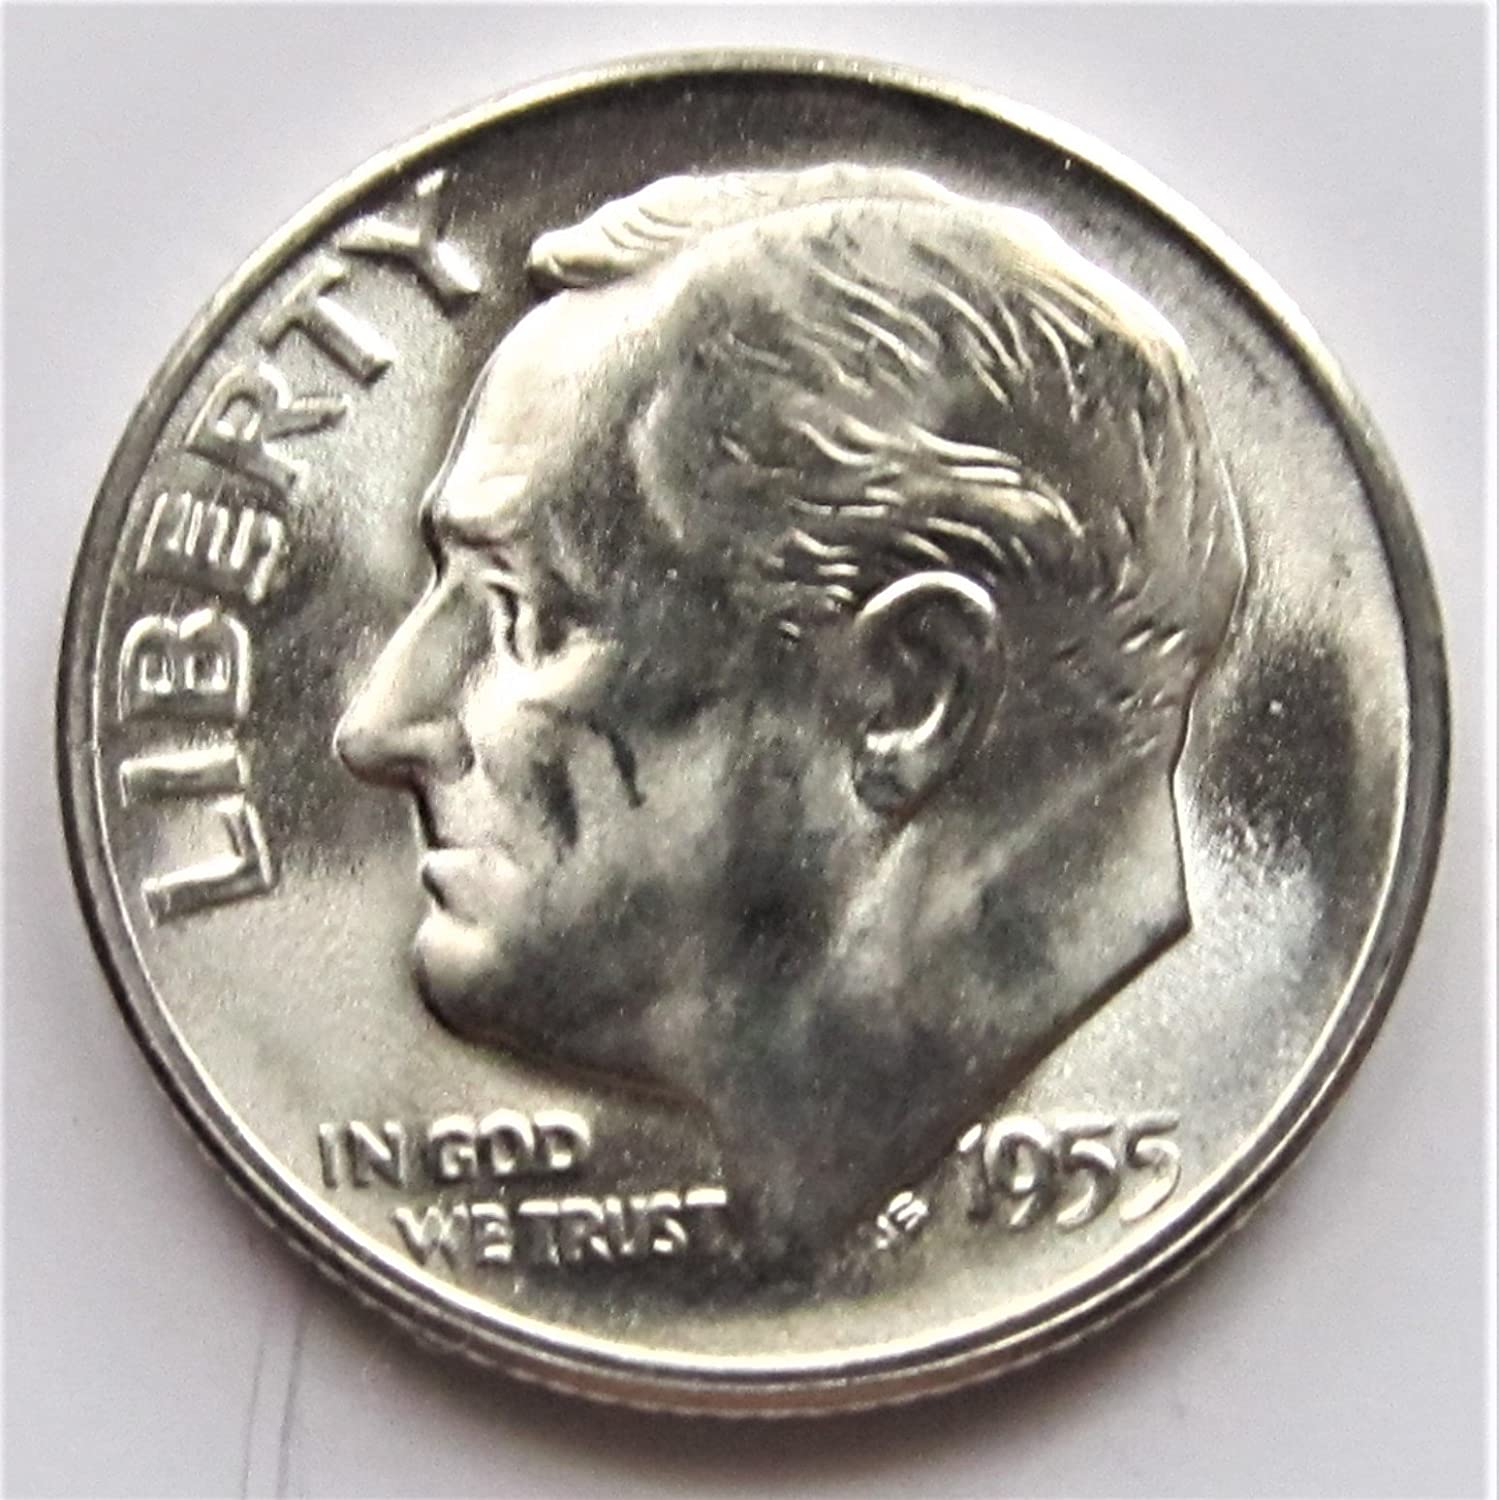 BRILLIANT UNCIRCULATED 1955-S Roosevelt Dime See Pictures for grade